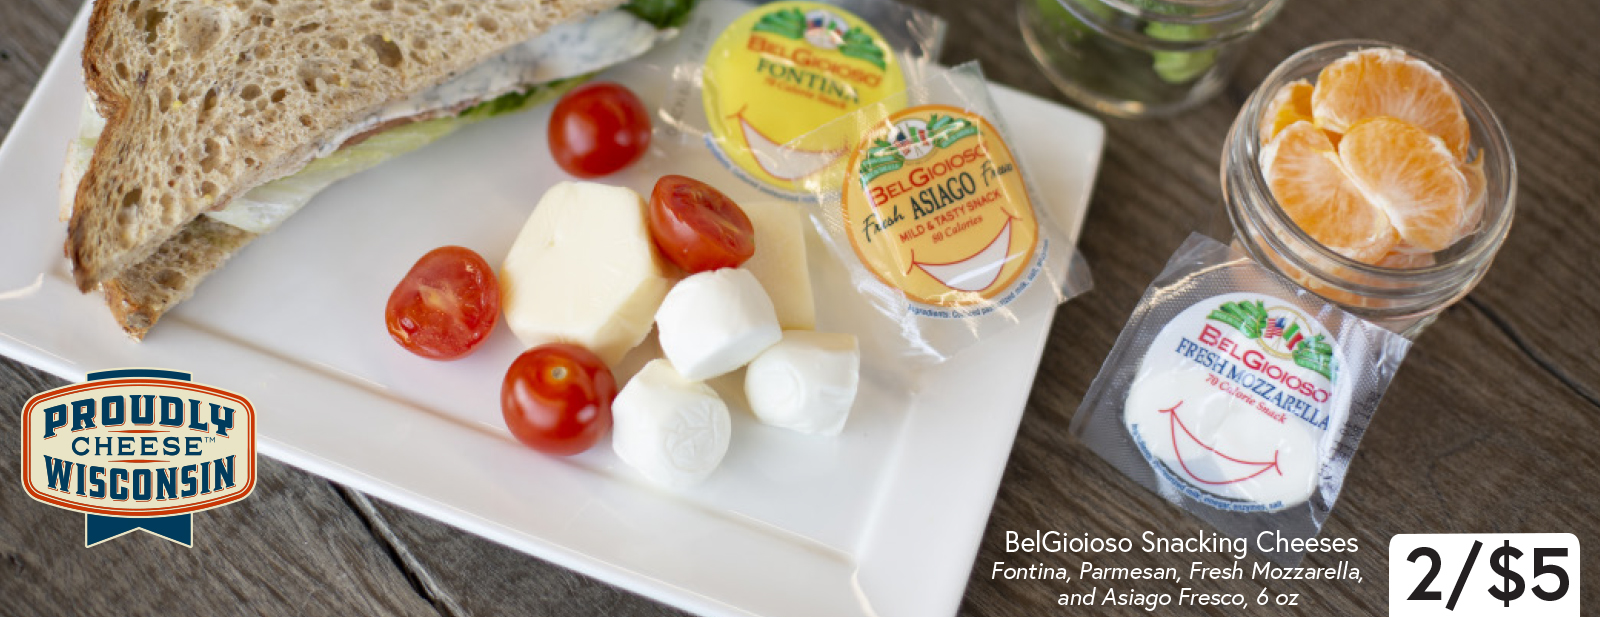 BelGioioso Snacking Cheeses 2/$5 6 oz